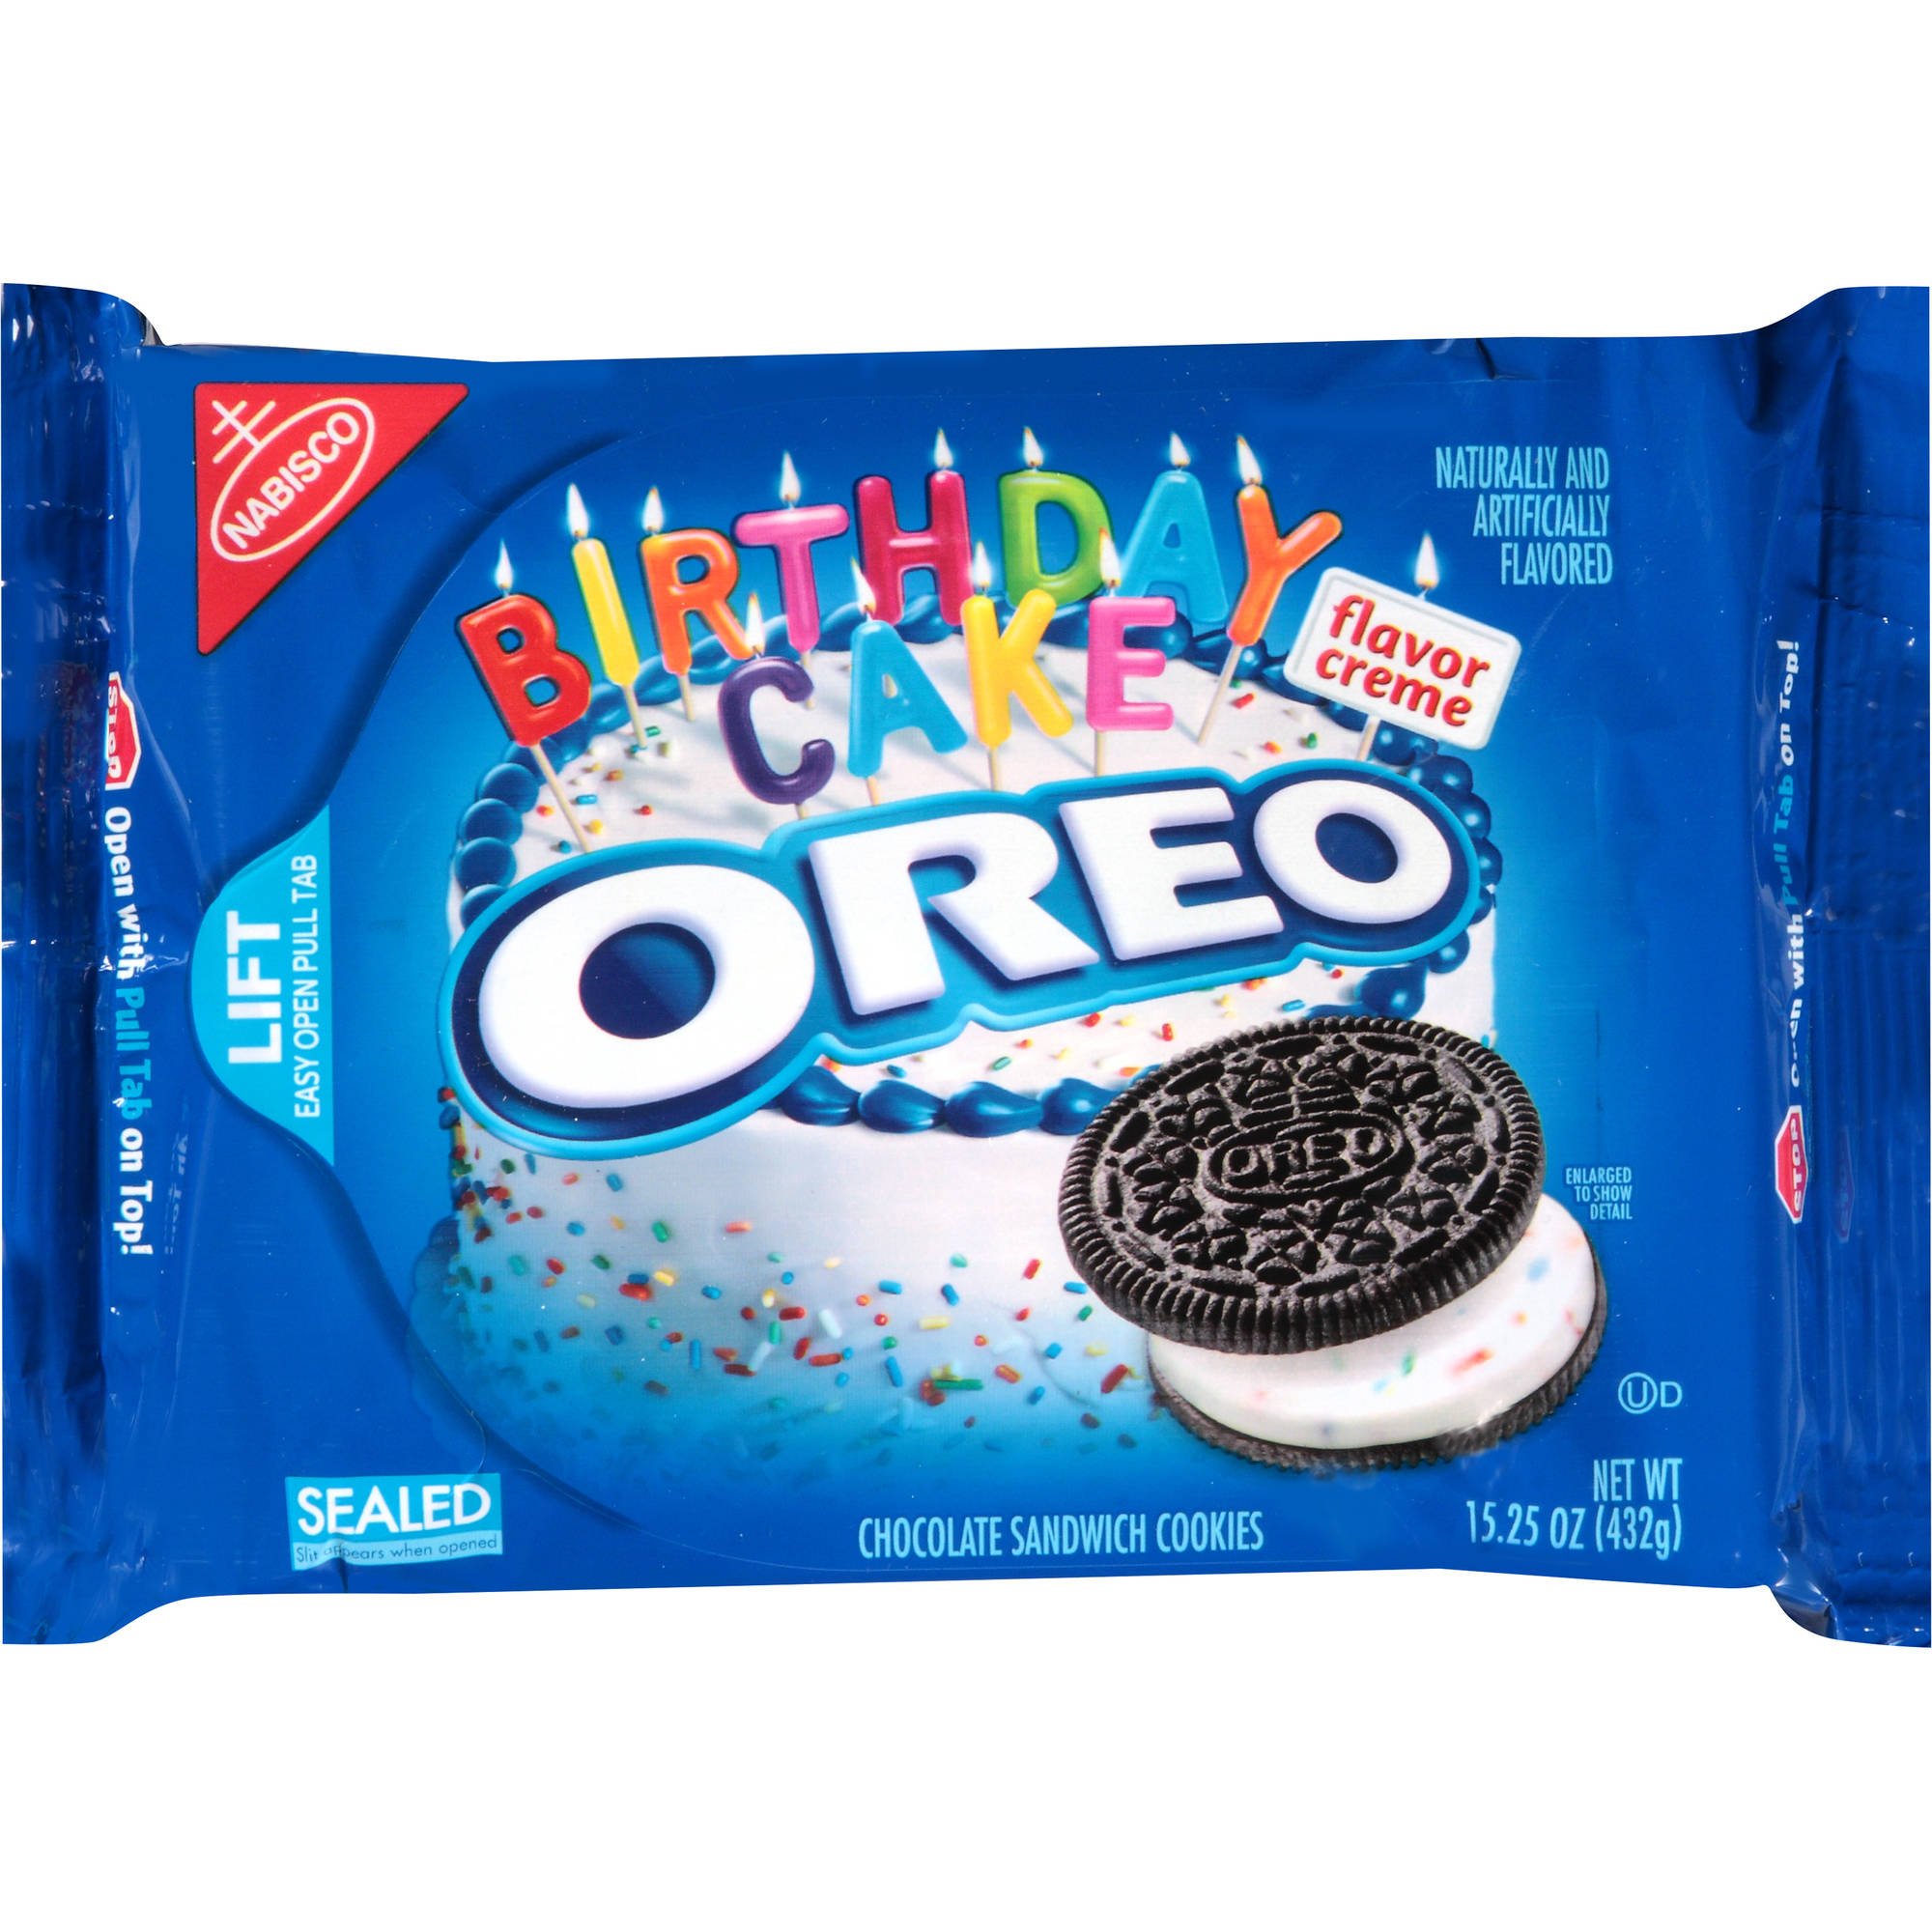 Nabisco Oreo Birthday Cake Flavor Creme Chocolate Sandwich Cookies, 15.25 oz